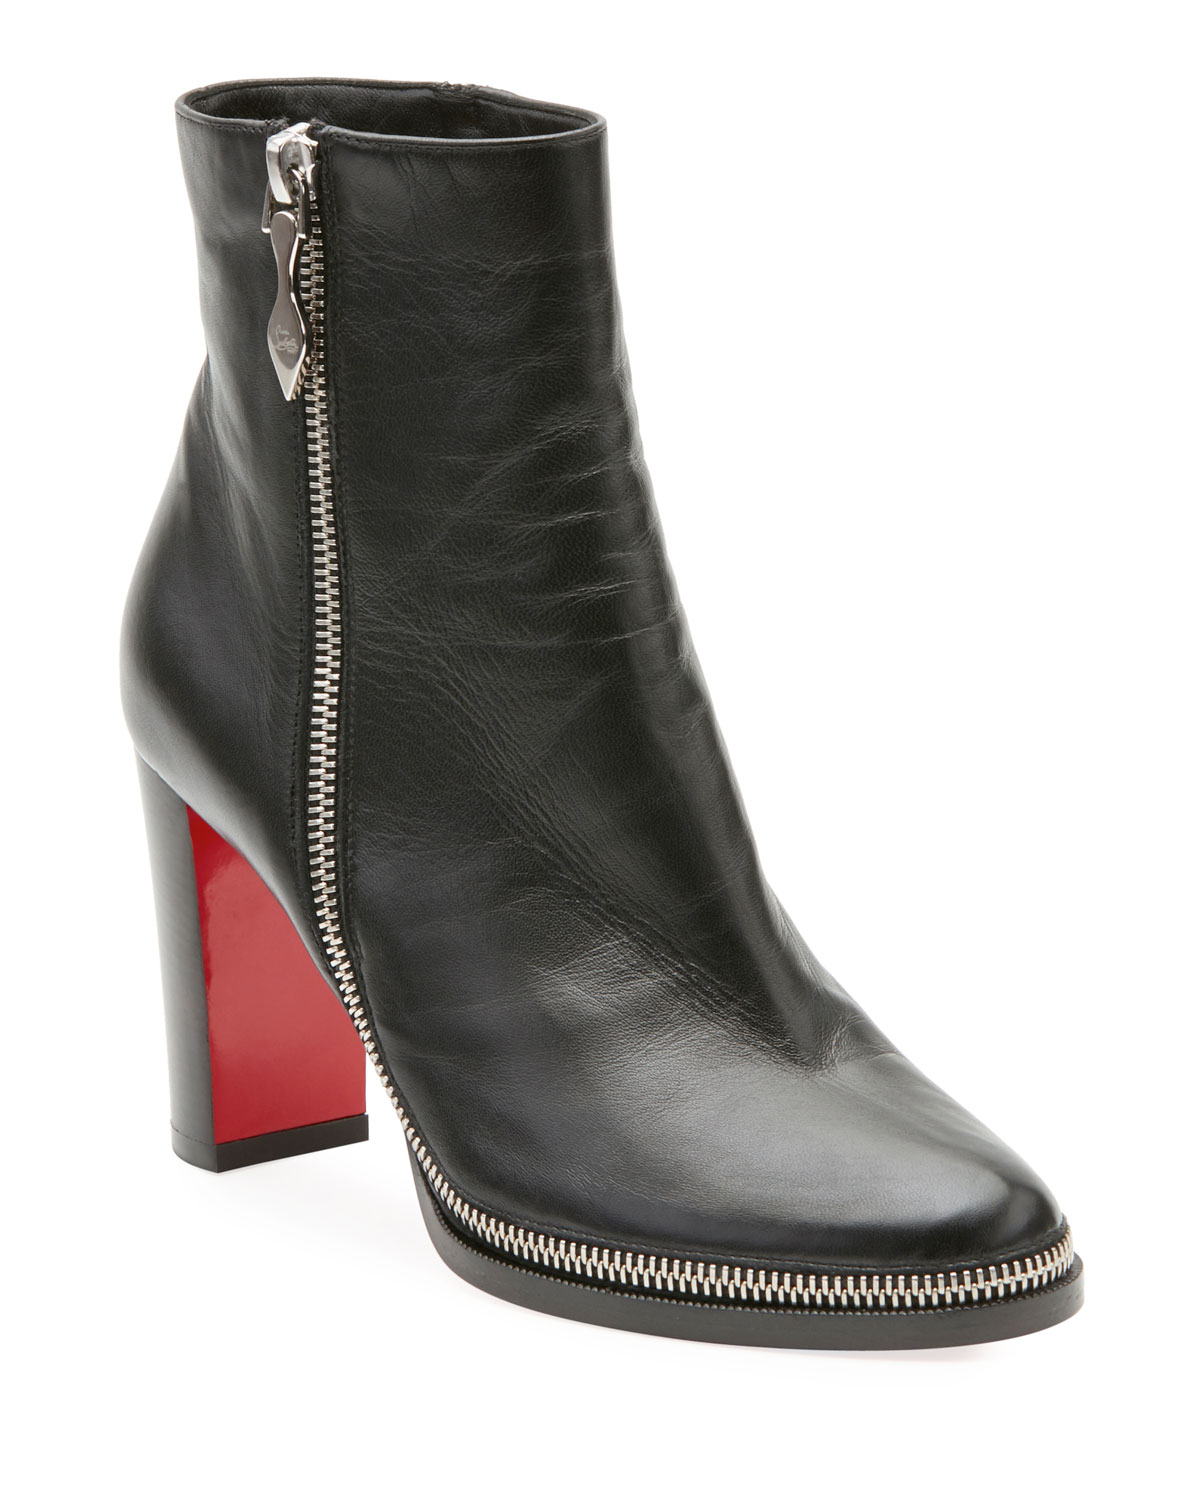 92e1d3d938a Telezip Crinkled Leather Red Sole Ankle Boots